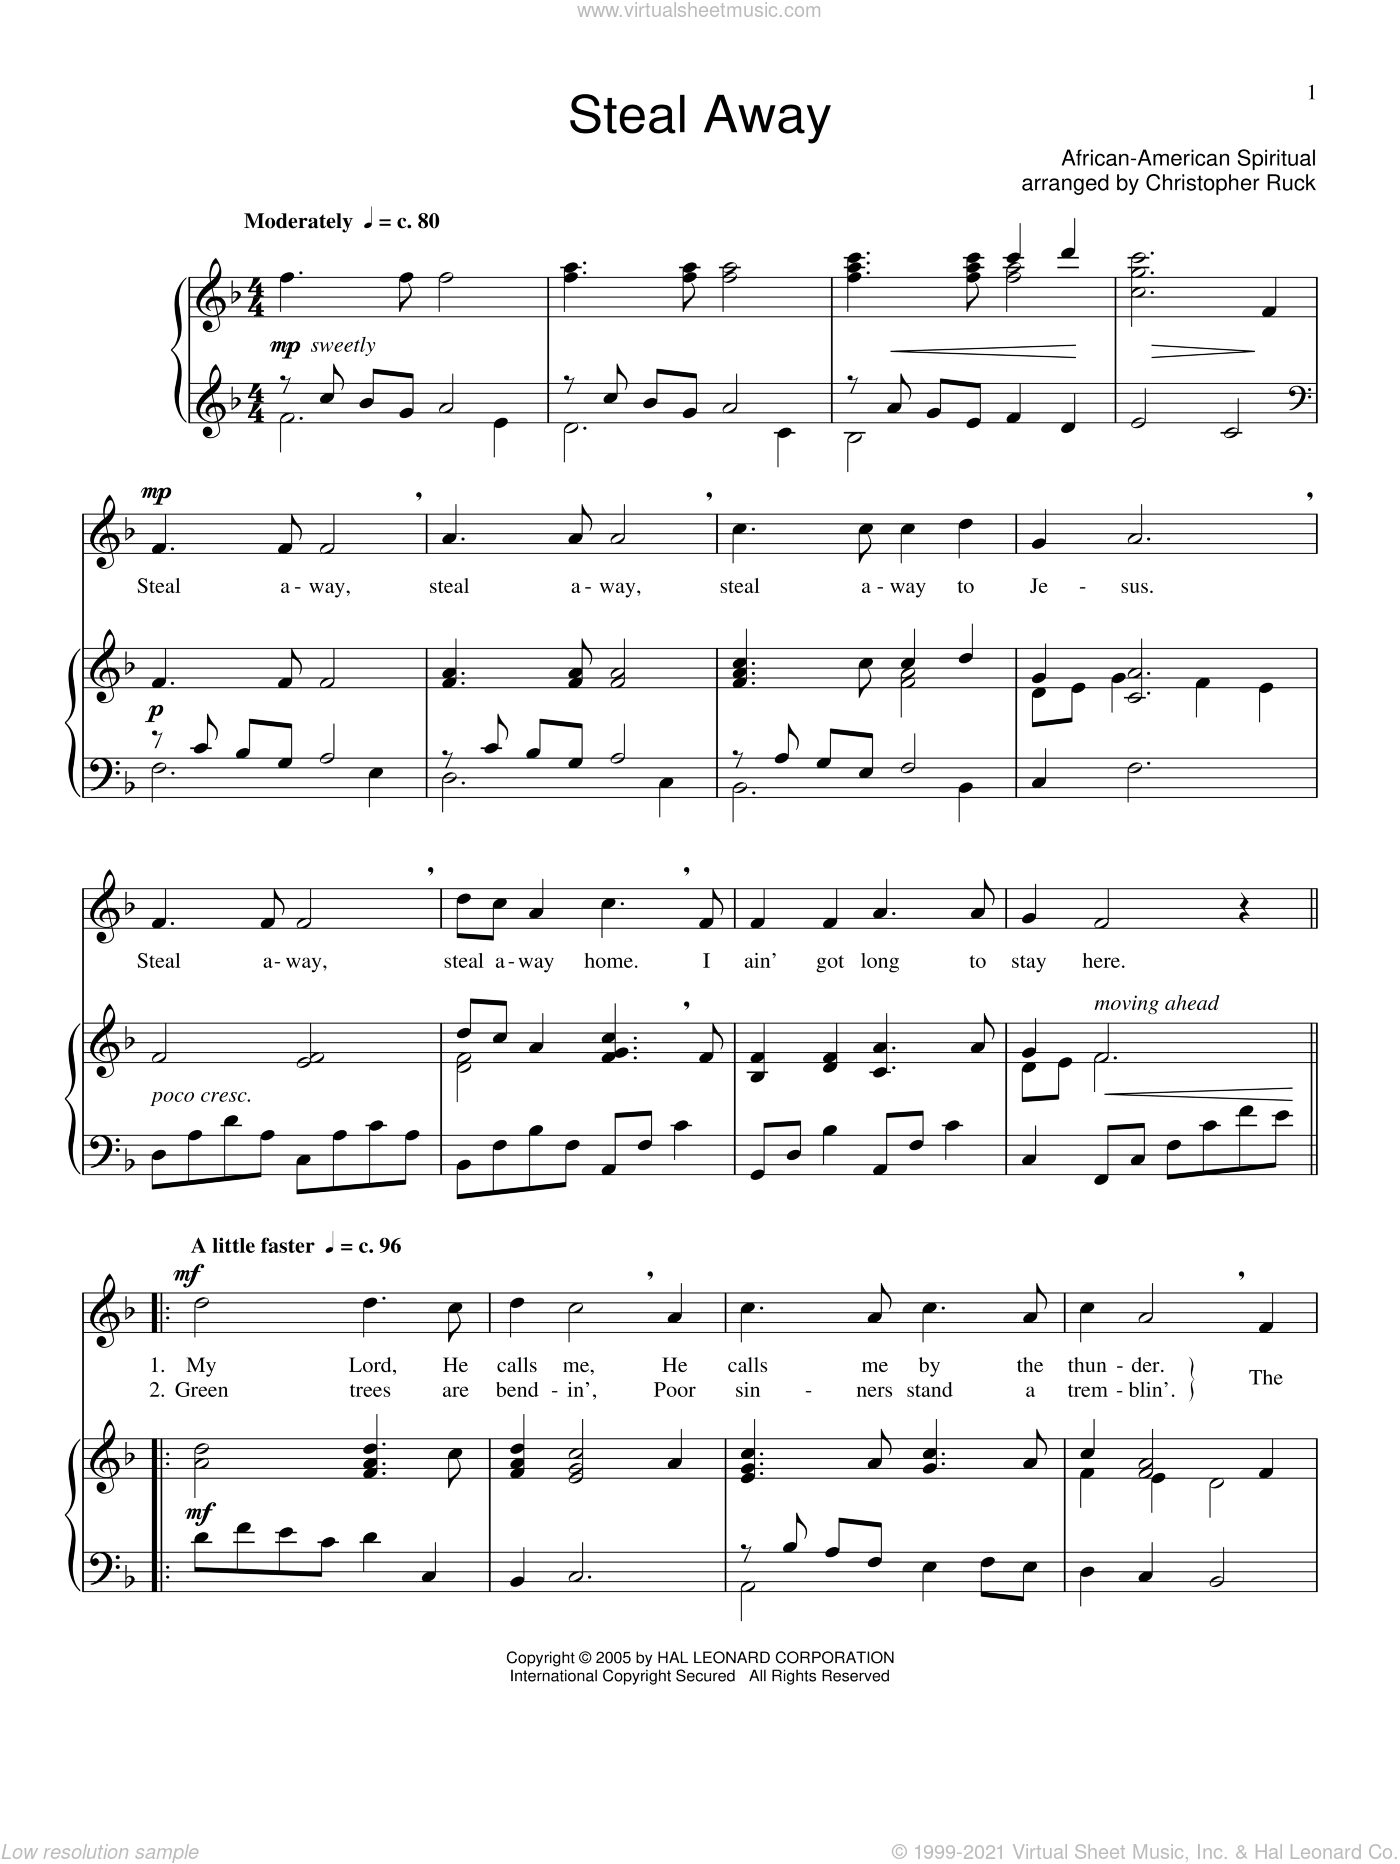 Steal Away sheet music for voice and piano, intermediate skill level